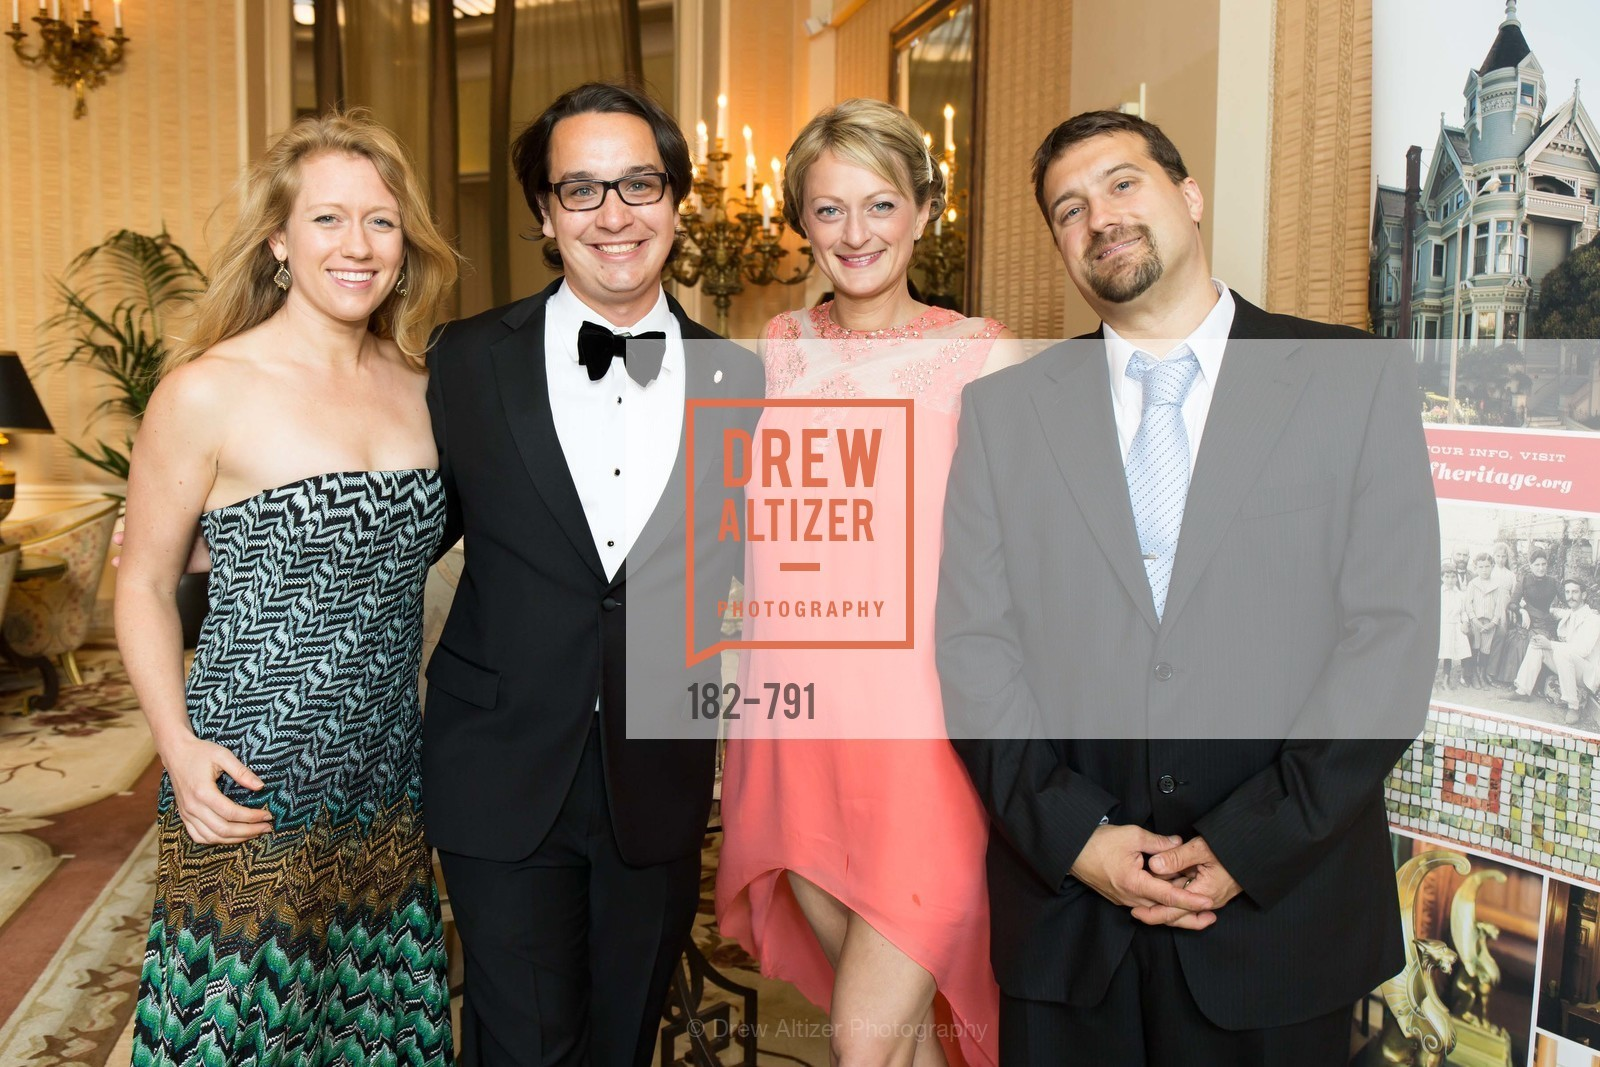 Kristina Nugent, Christopher Wiseman, Holly Goodin, John Adams, SAN FRANCISCO HERITAGE Soiree 2015, US, April 19th, 2015,Drew Altizer, Drew Altizer Photography, full-service agency, private events, San Francisco photographer, photographer california